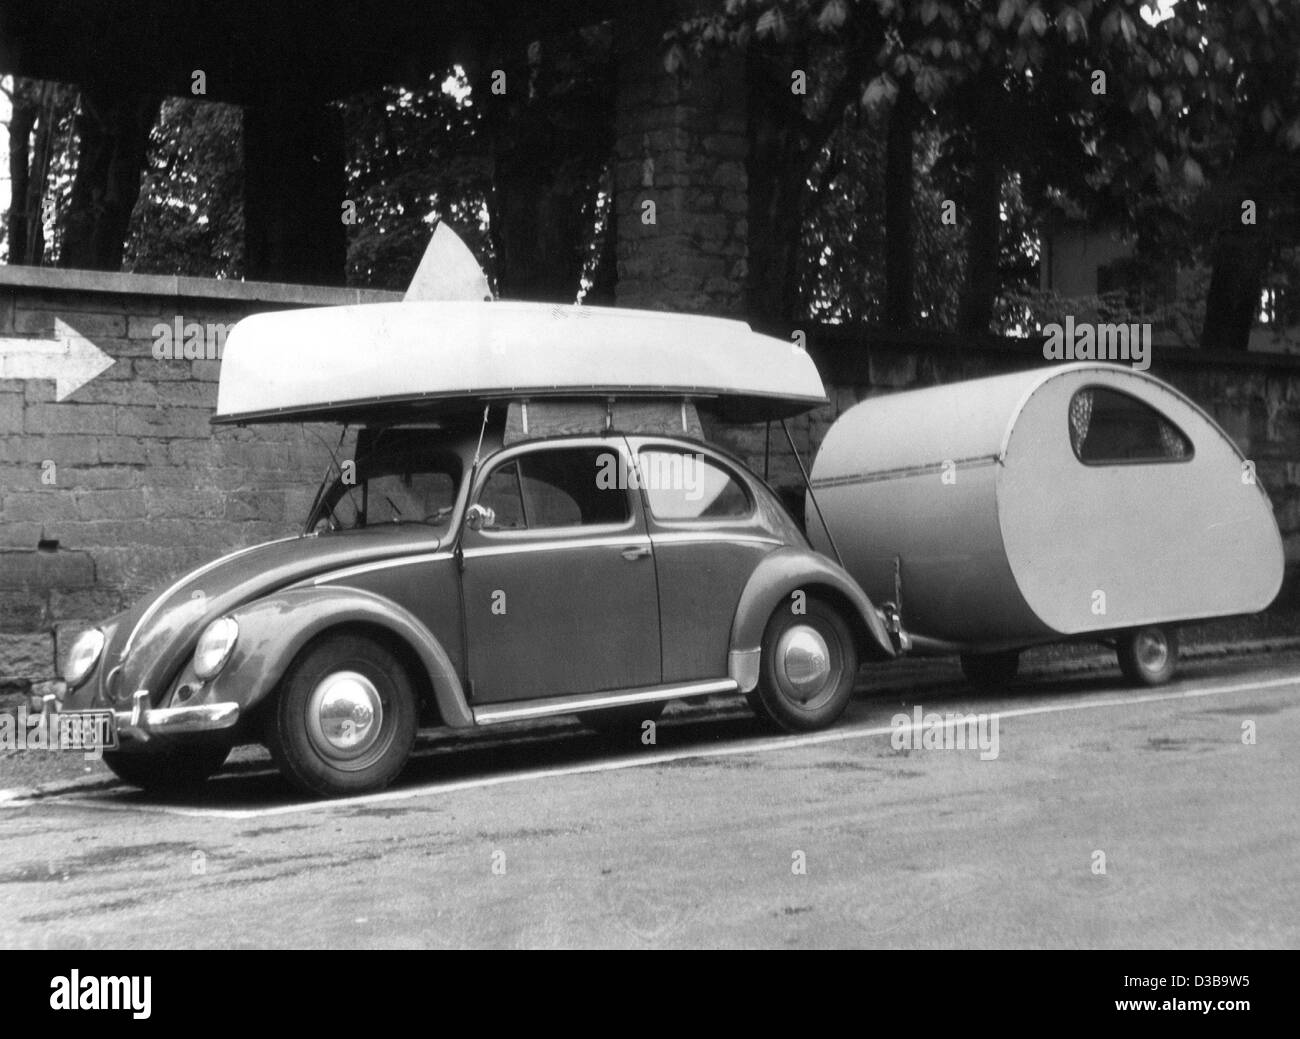 (dpa files) - A VW Beetle loaded with a sailing boat and a hitched caravan is ready for the holiday trip, West Germany, - Stock Image